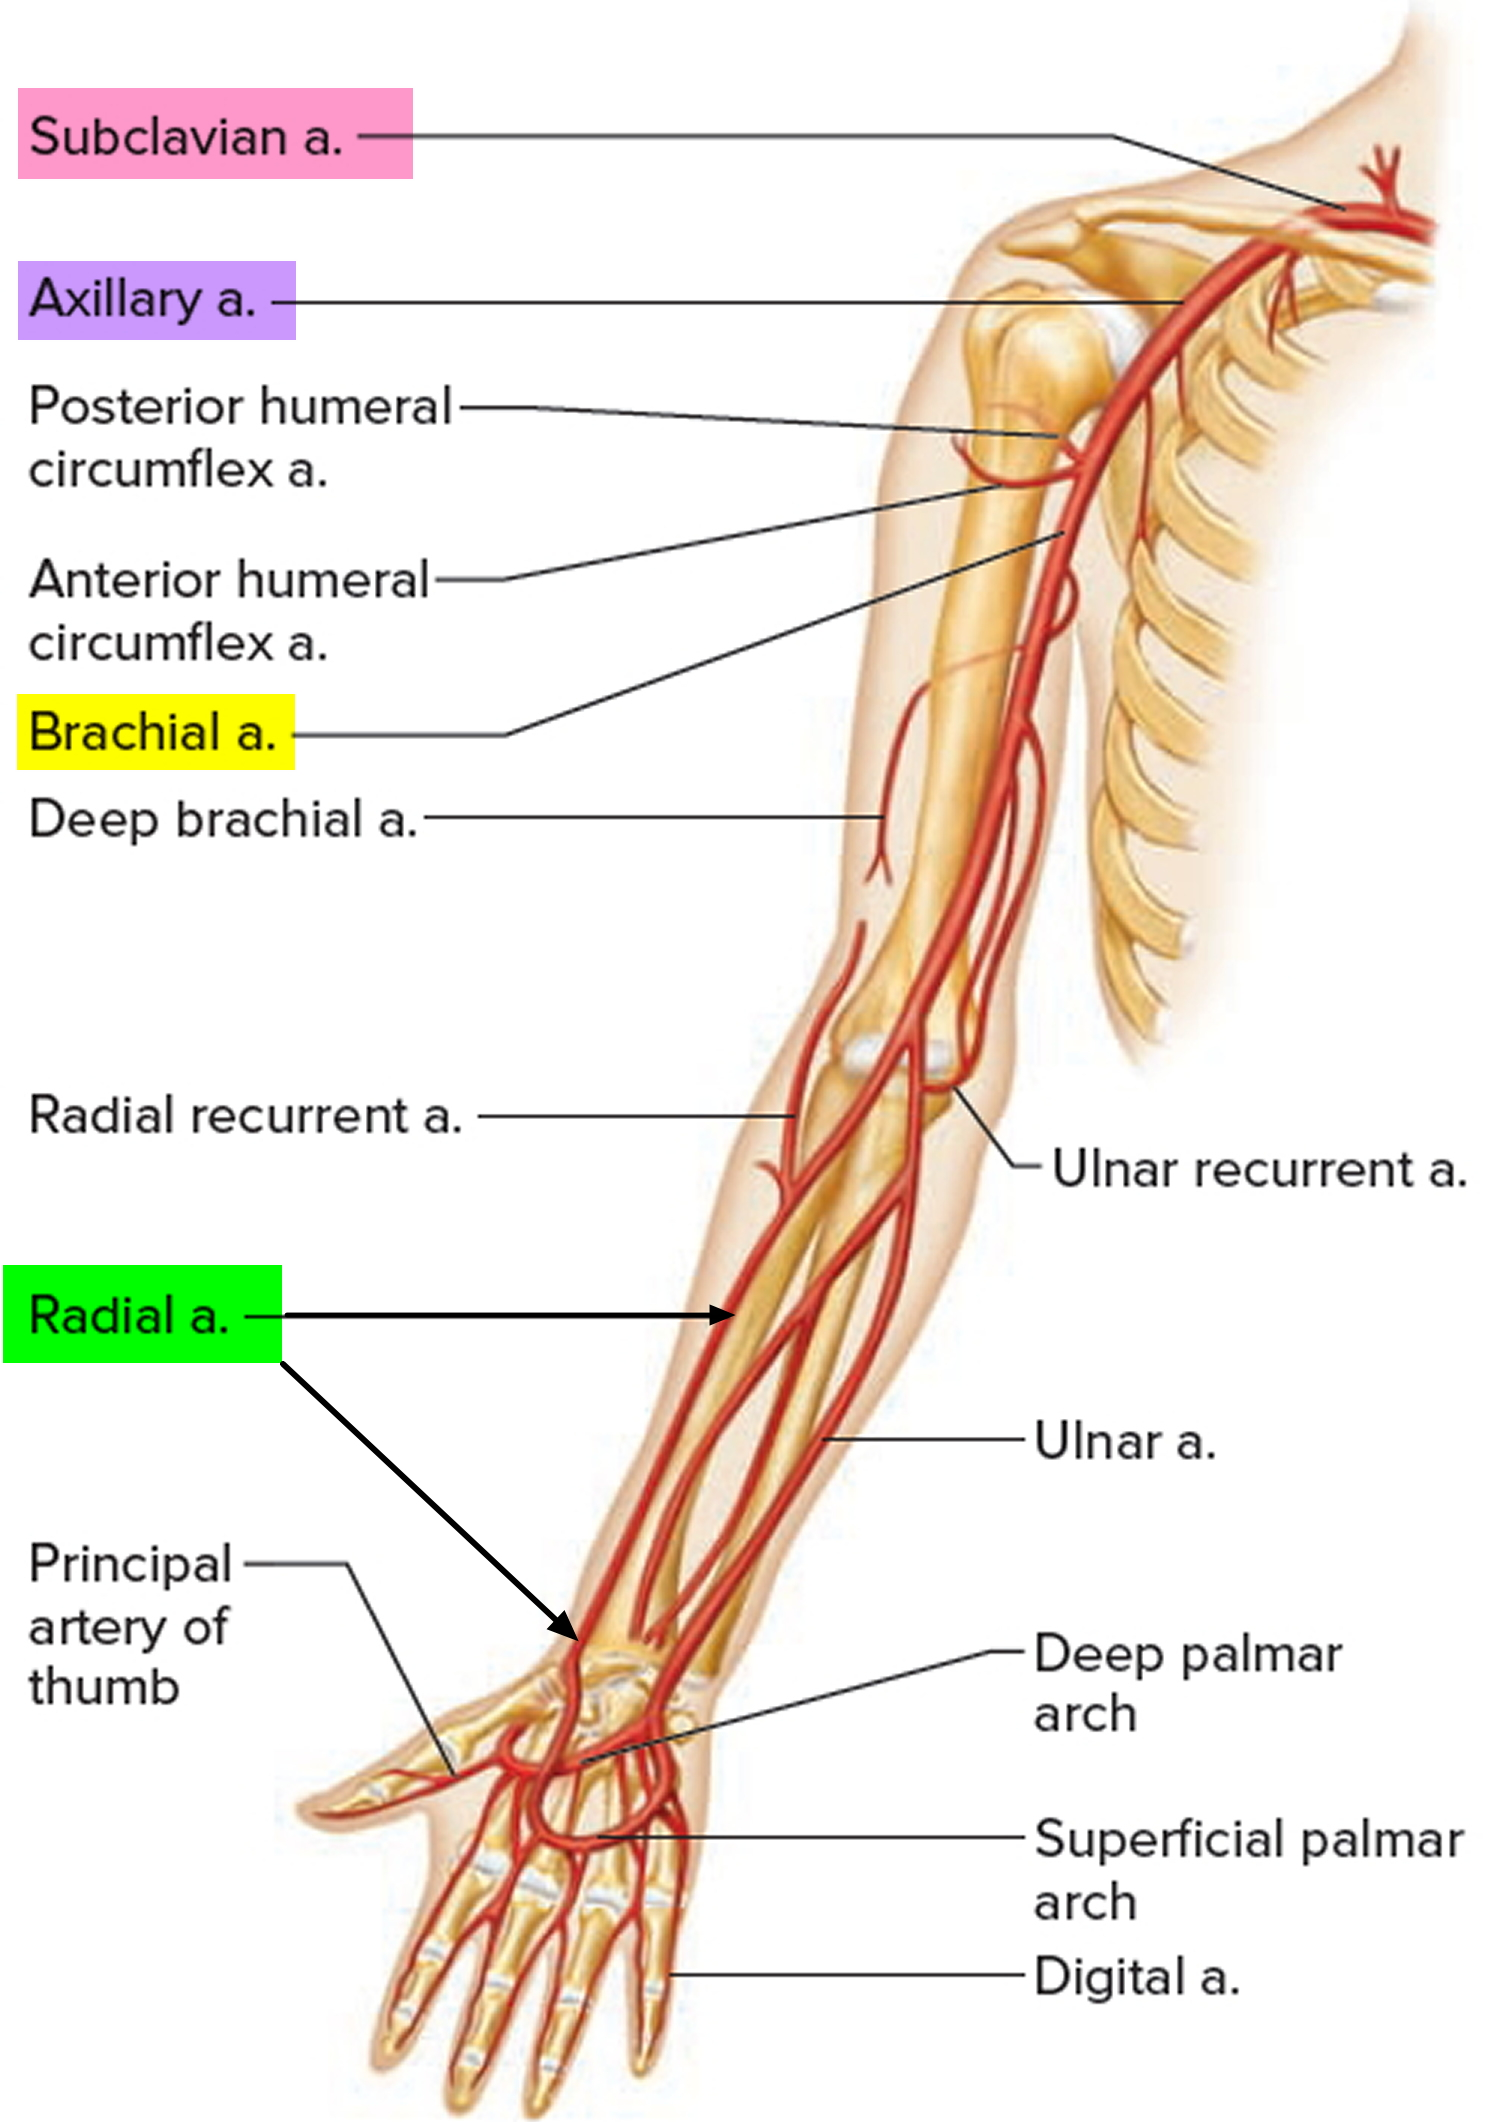 Radial Artery - Location in the Arm for Radial Artery Catheterization